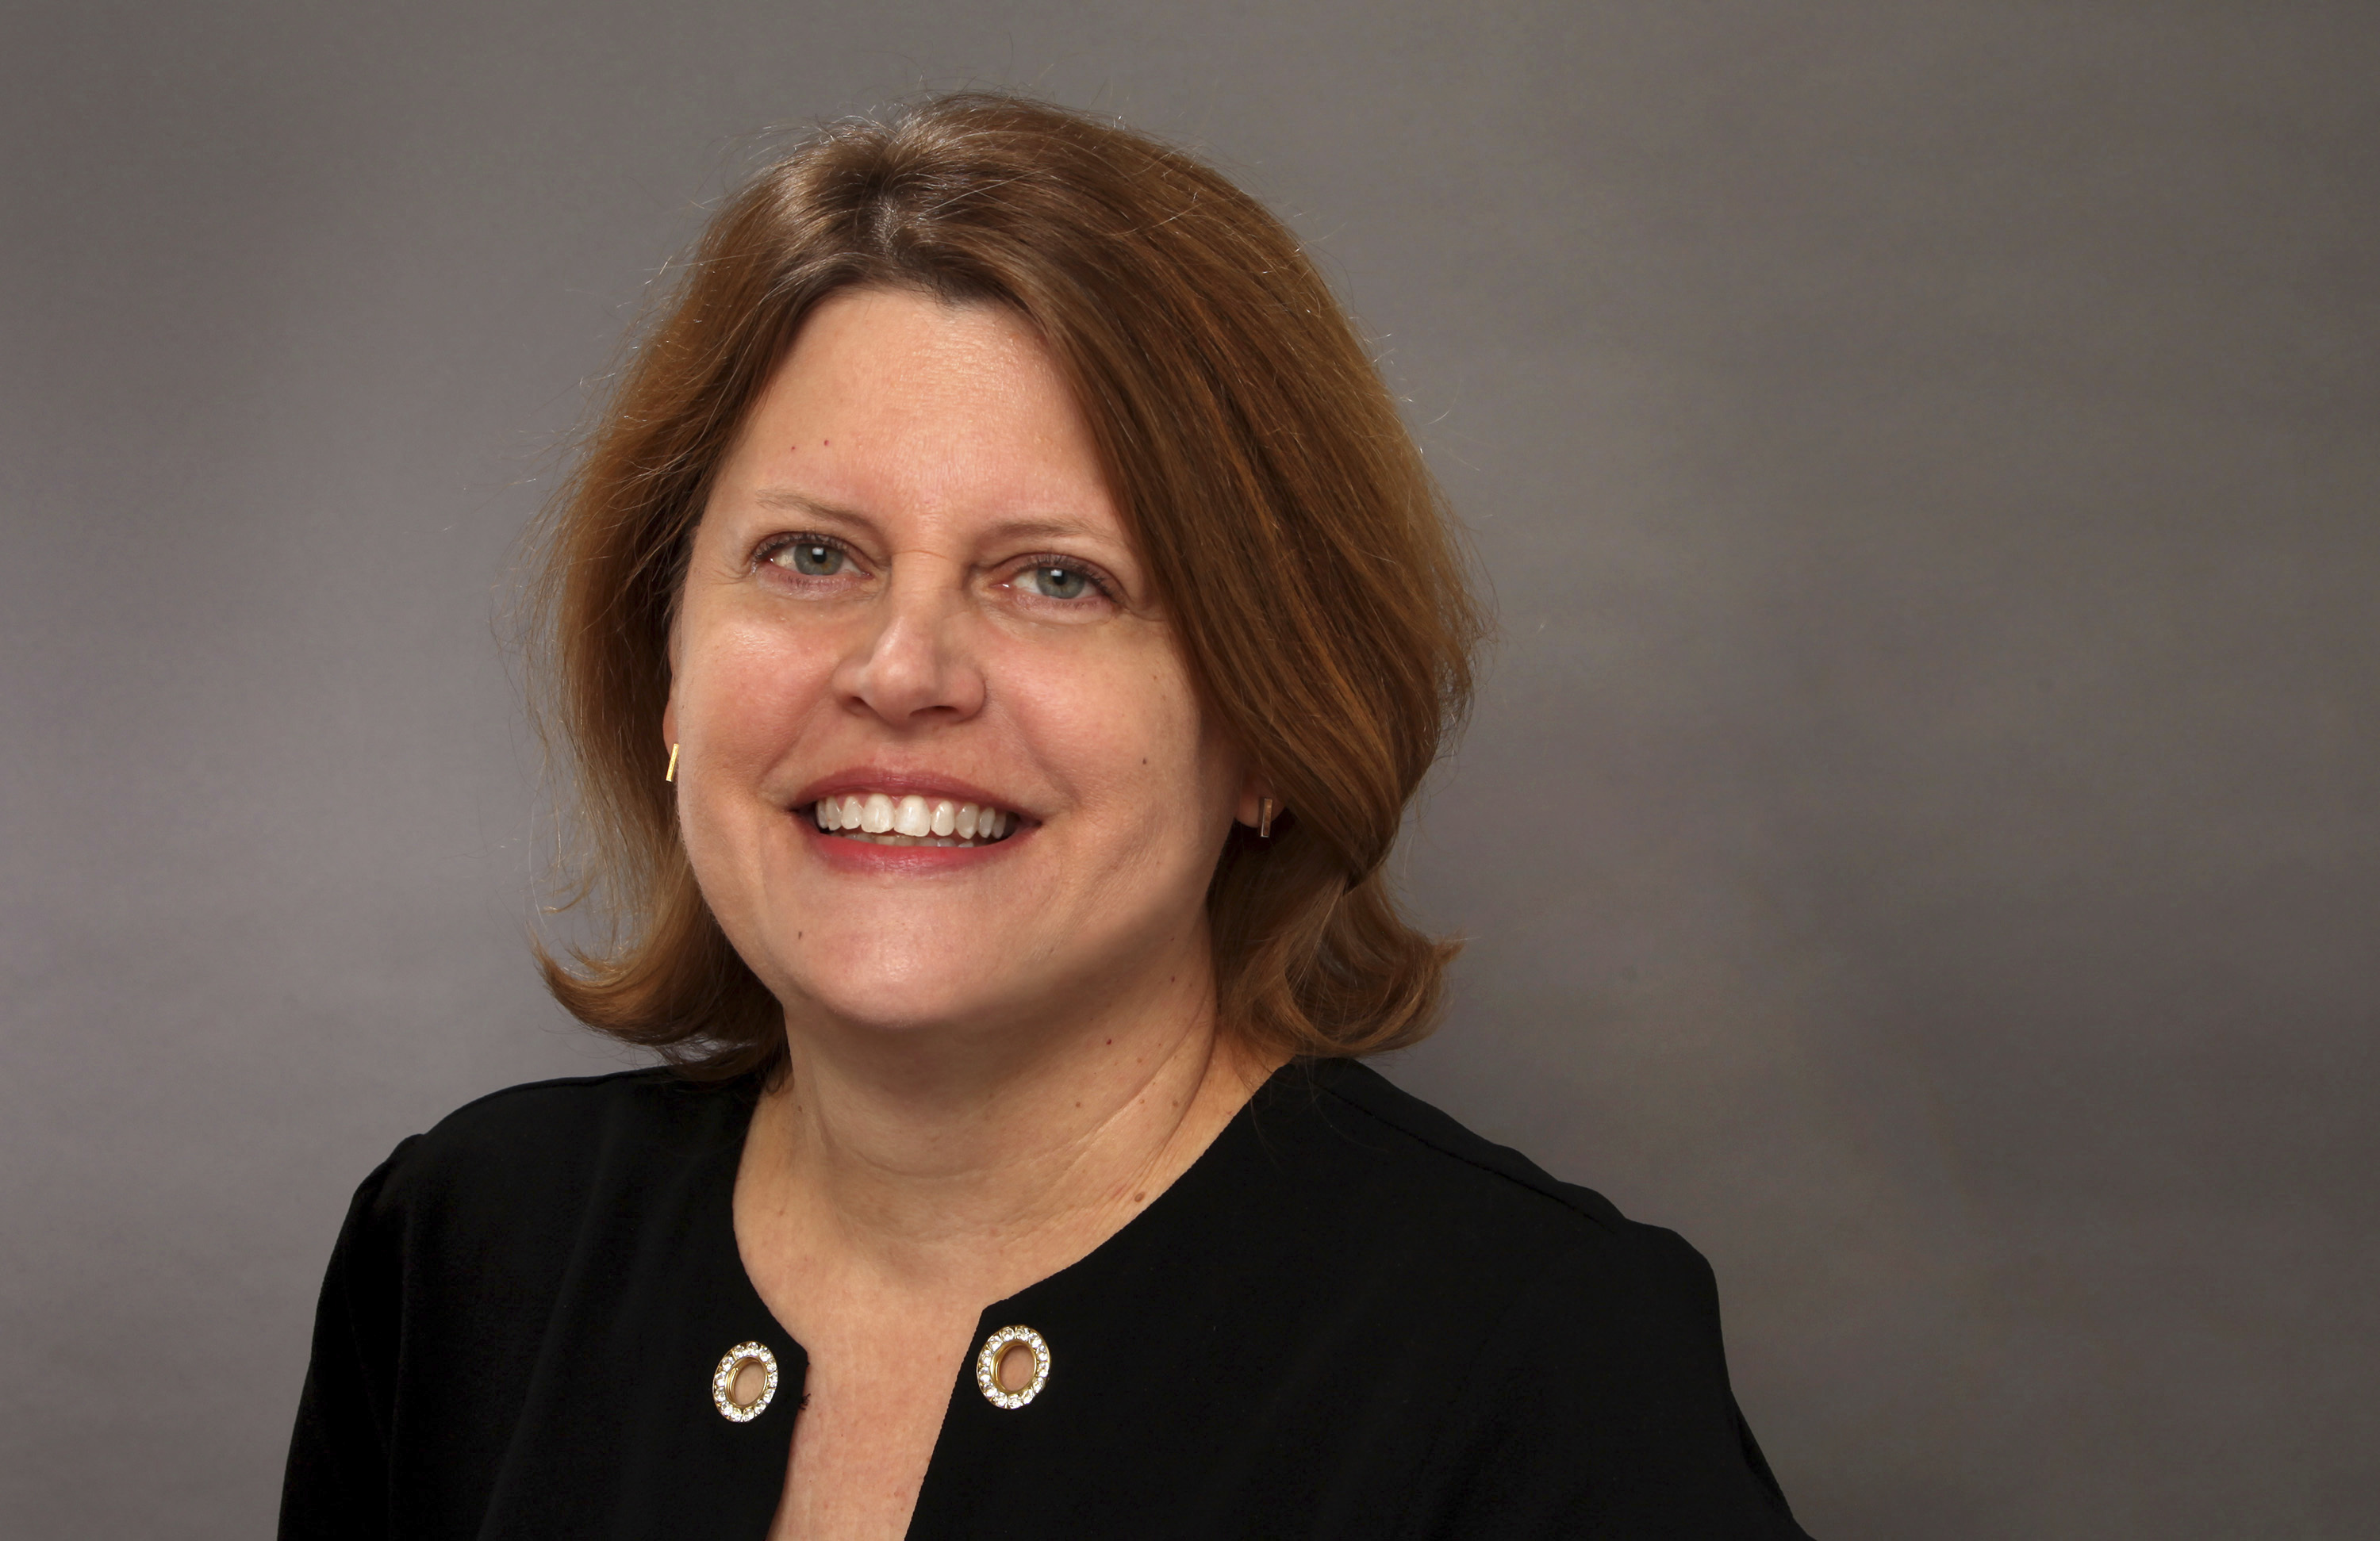 Sally Buzbee, senior vice president and executive editor of The Associated Press, was named Tuesday, May 11, 2021, as executive editor of The Washington Post, succeeding the recently retired Marty Baron.